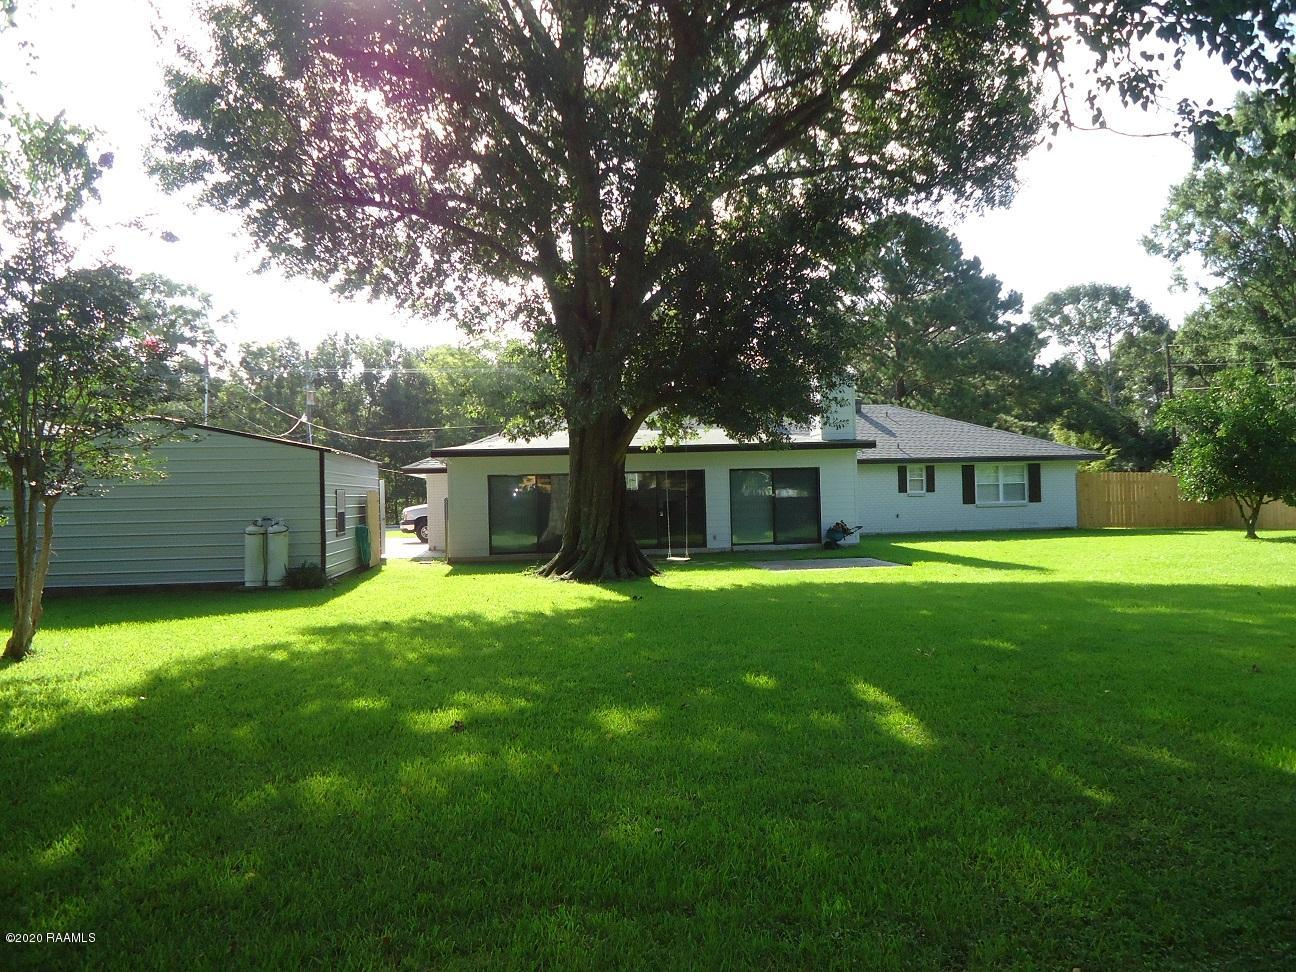 220 Larriviere Road, Youngsville, LA 70592 Photo #32